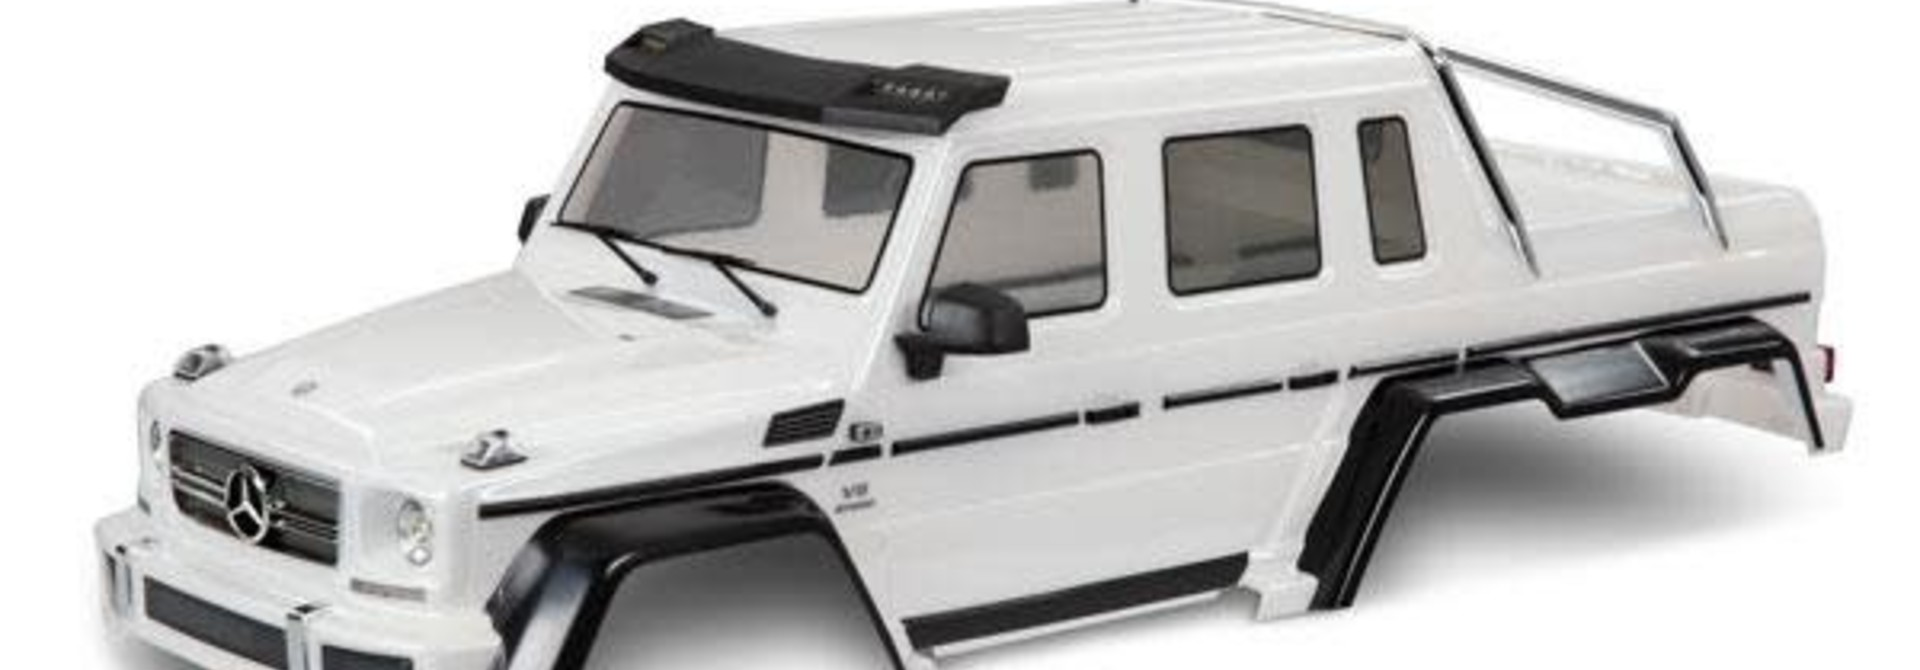 Body, Mercedes-Benz G 63, complete (pearl white) (includes grille, side mirrors, door handles, & windshield wipers)